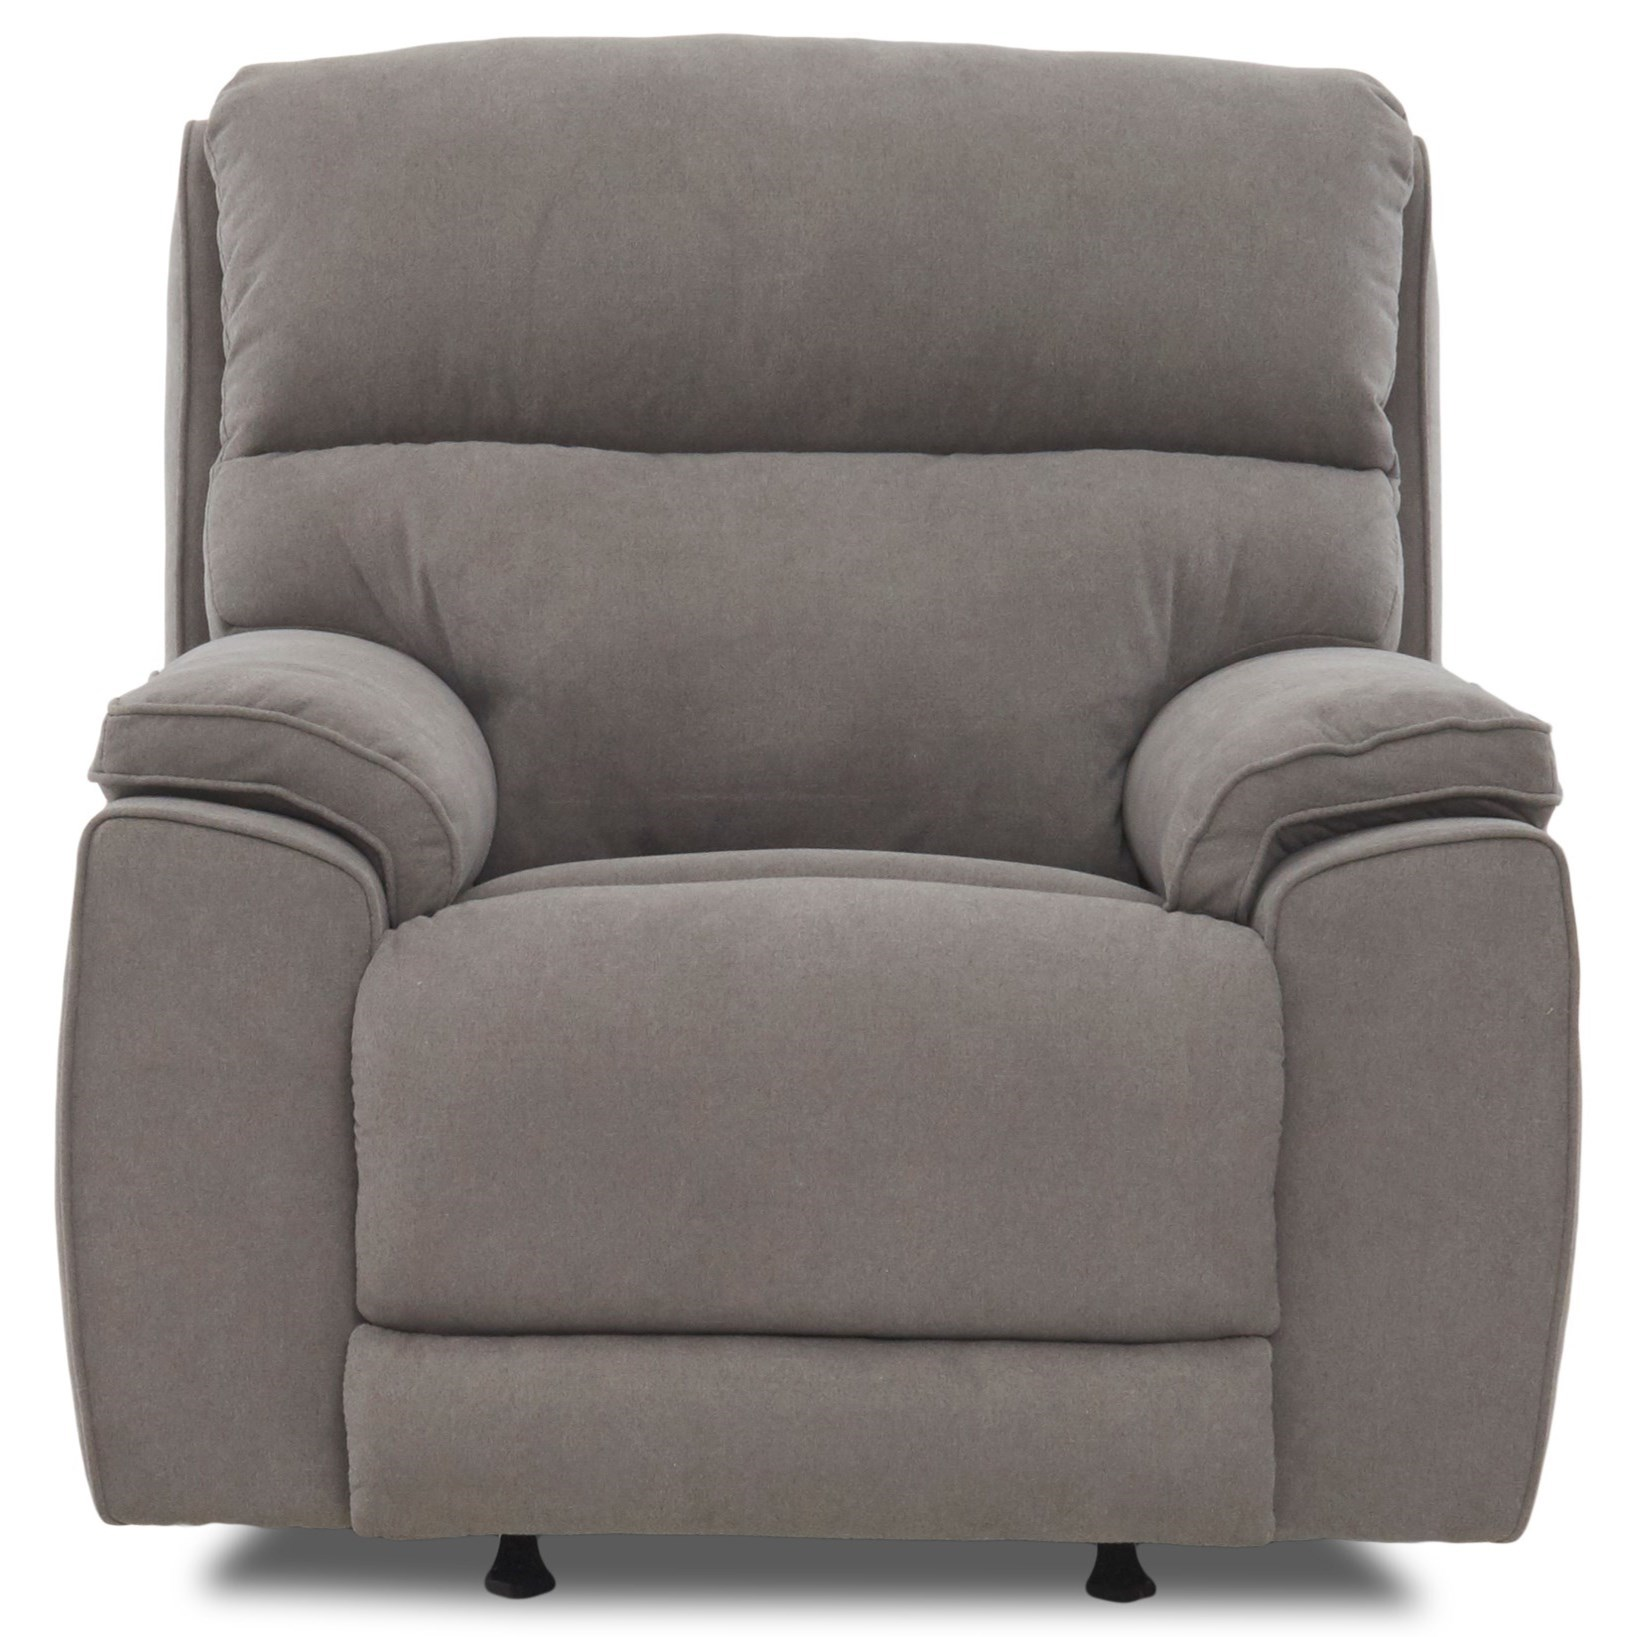 Omaha Power Rock Reclining Chair w/ Pwr Headrest by Klaussner at Catalog Outlet